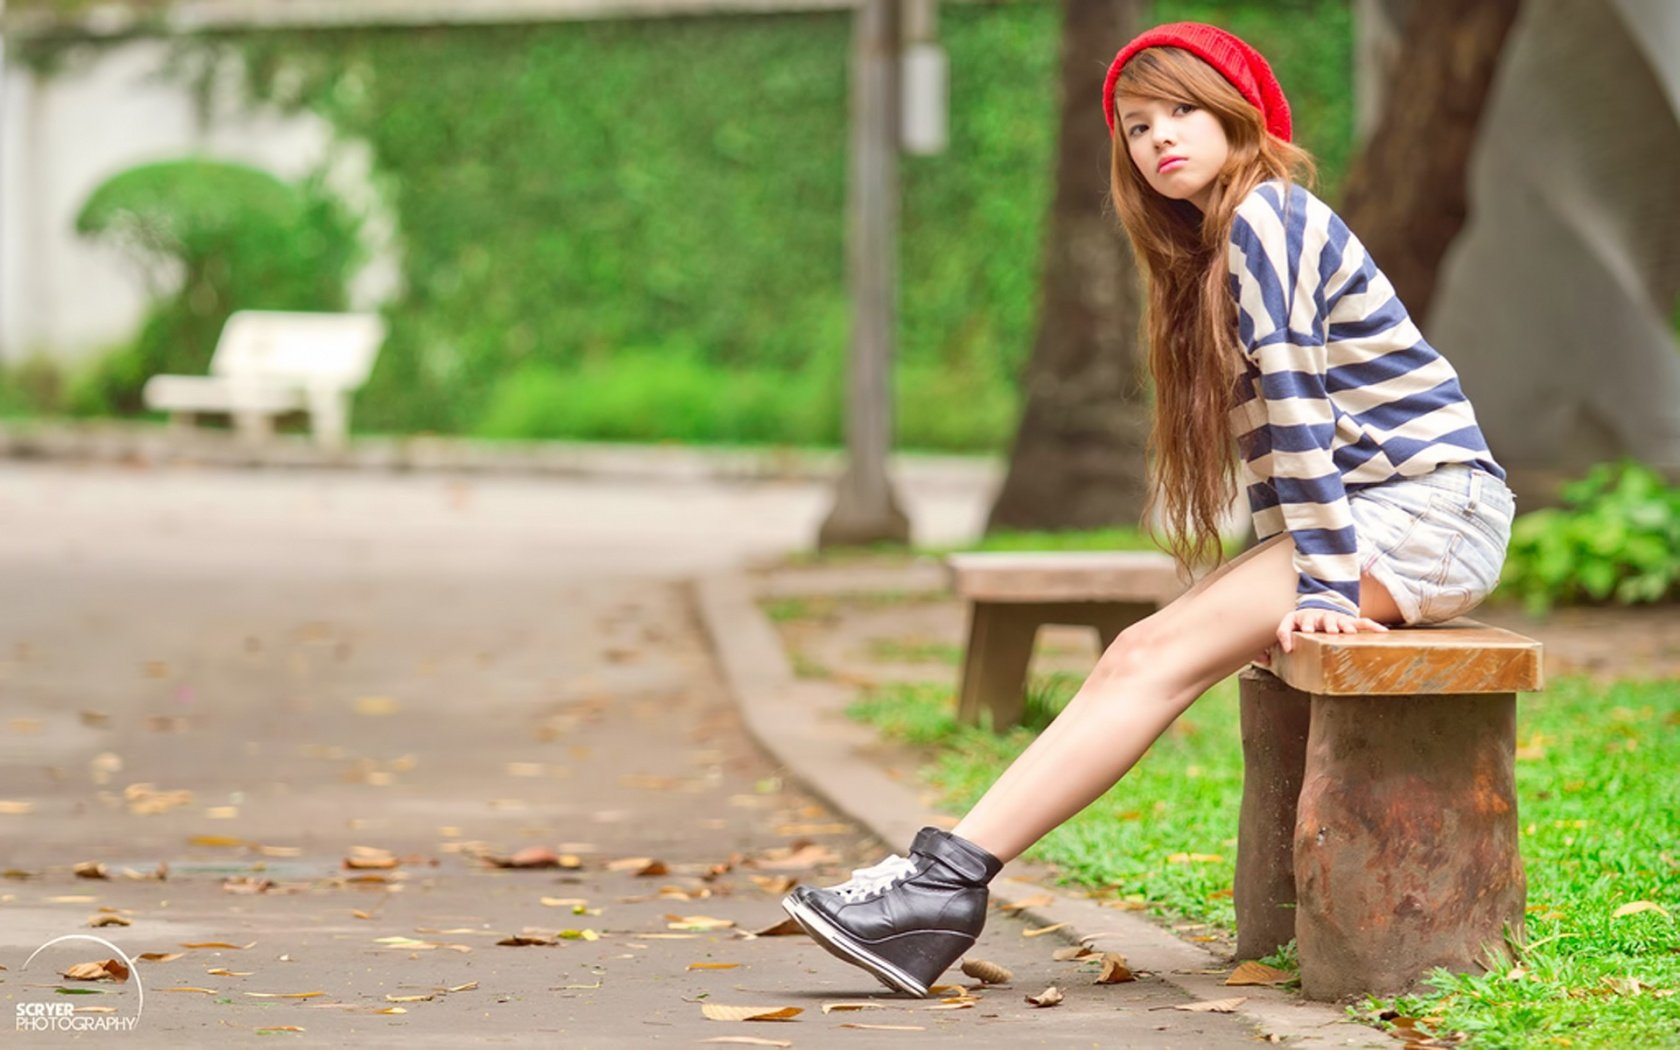 47 Cute Teen Girl Wallpapers On Wallpapersafari